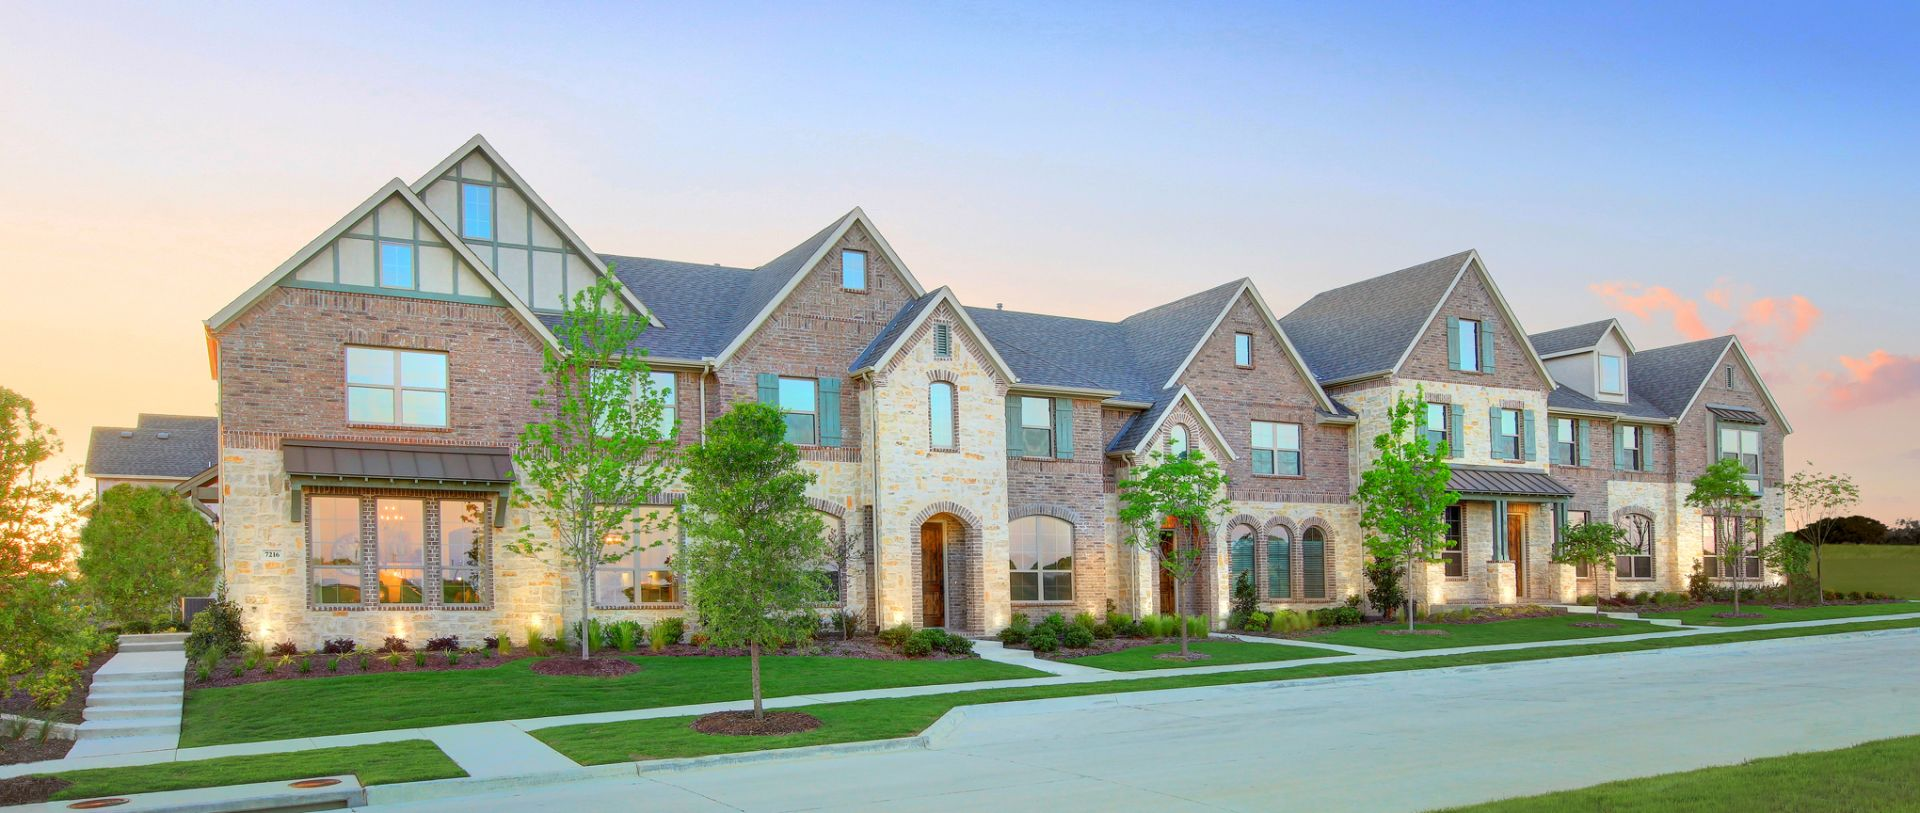 Ever Consider a Town Home in McKinney? – Stacy Crossing is It!